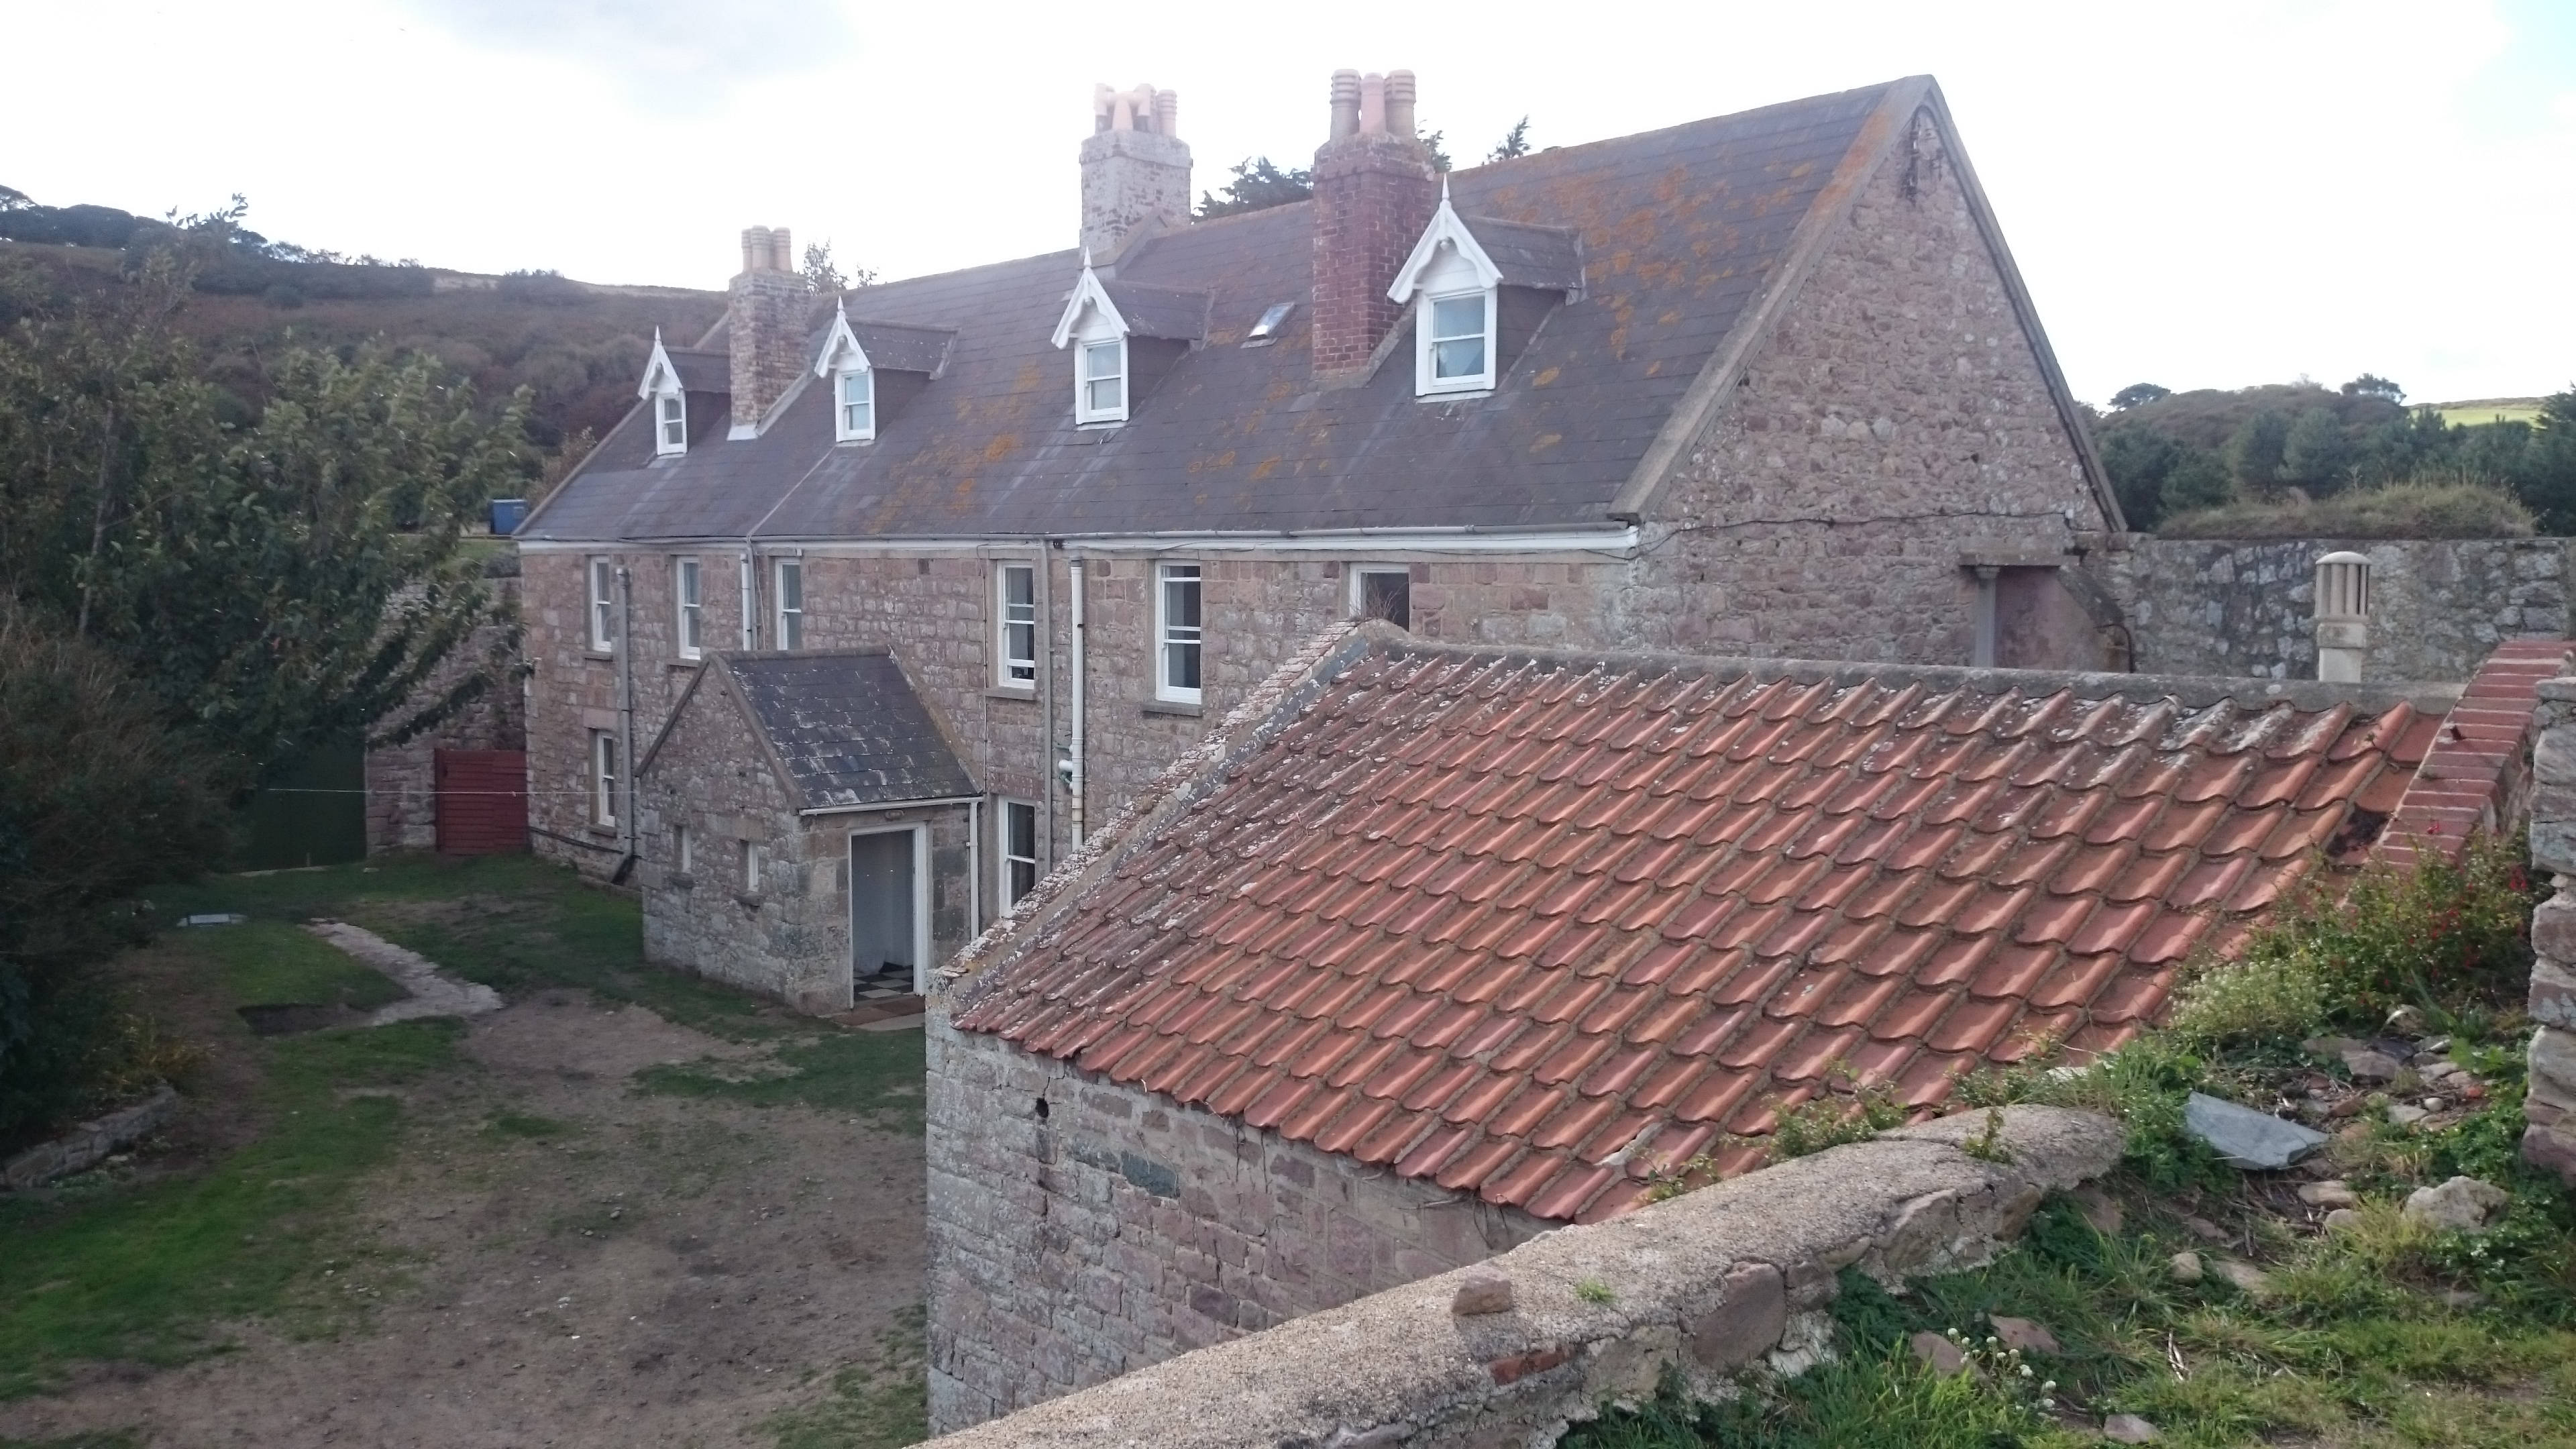 The Alderney Bird Observatory. Alderney ABO conference 8-9 October 2016. Photo by HGYoung (46)